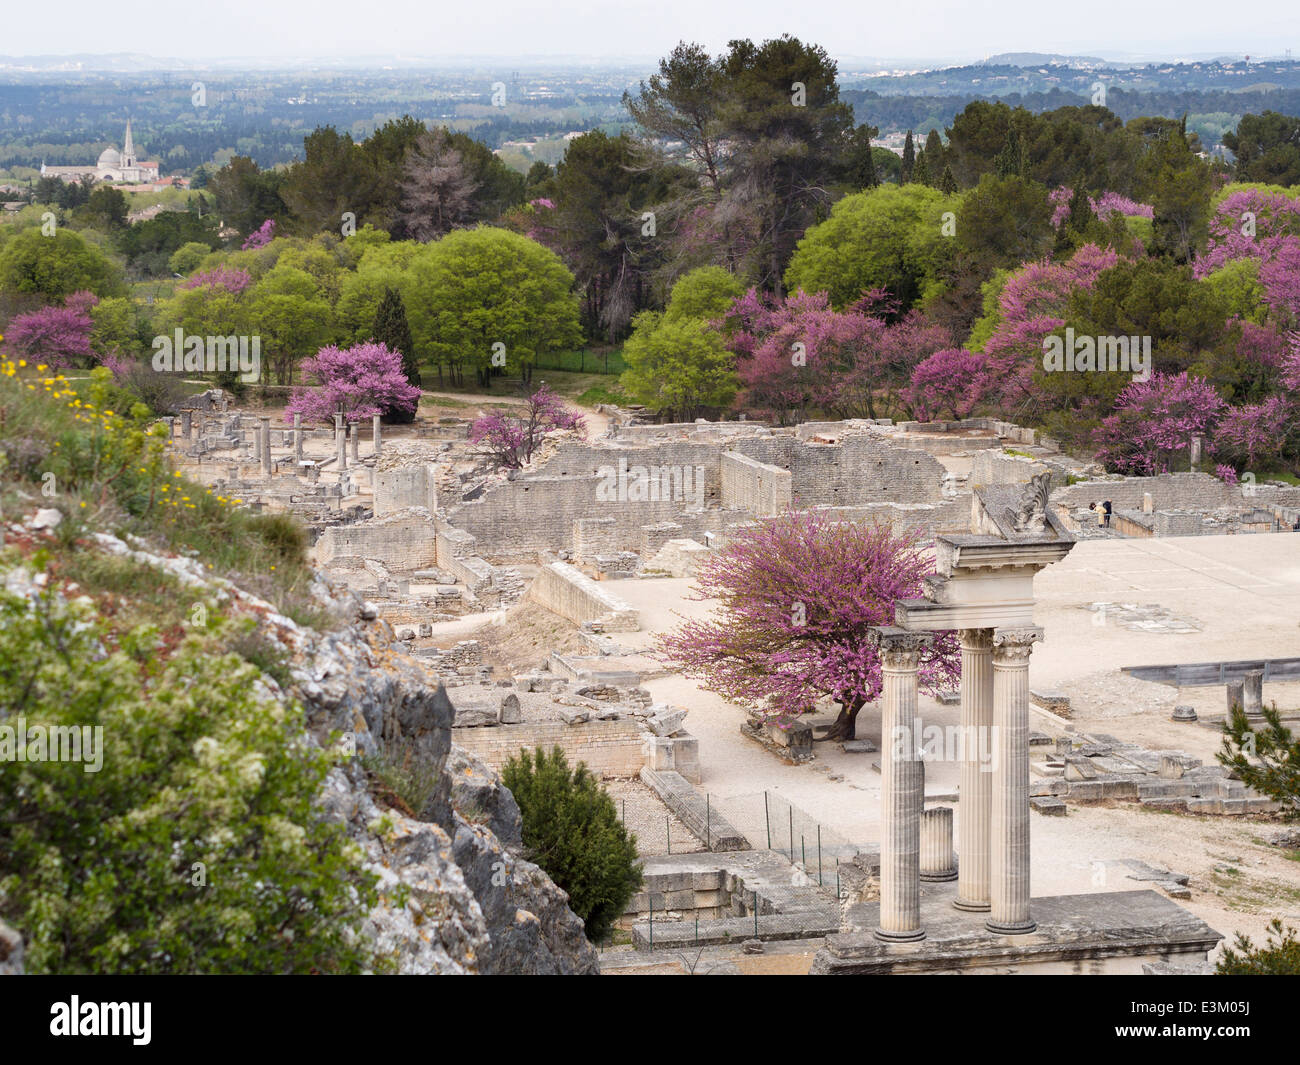 Ruins of Glanum site overview looking South. The extensive ruins of the Roman city in spring. Flowering trees punctuate. - Stock Image